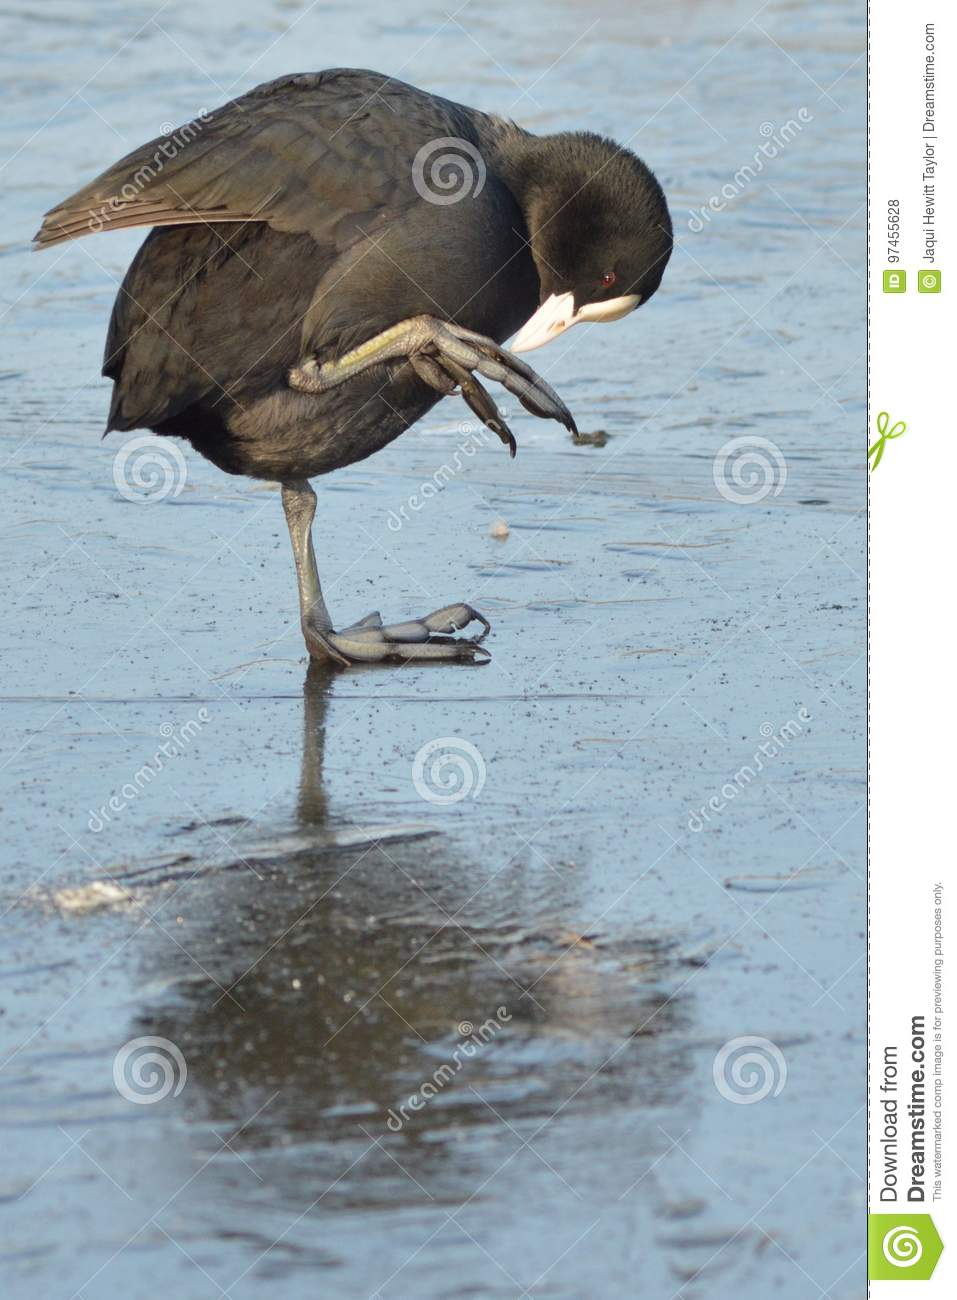 Download A coot on the ice stock photo. Image of water, lake, pond - 97455628